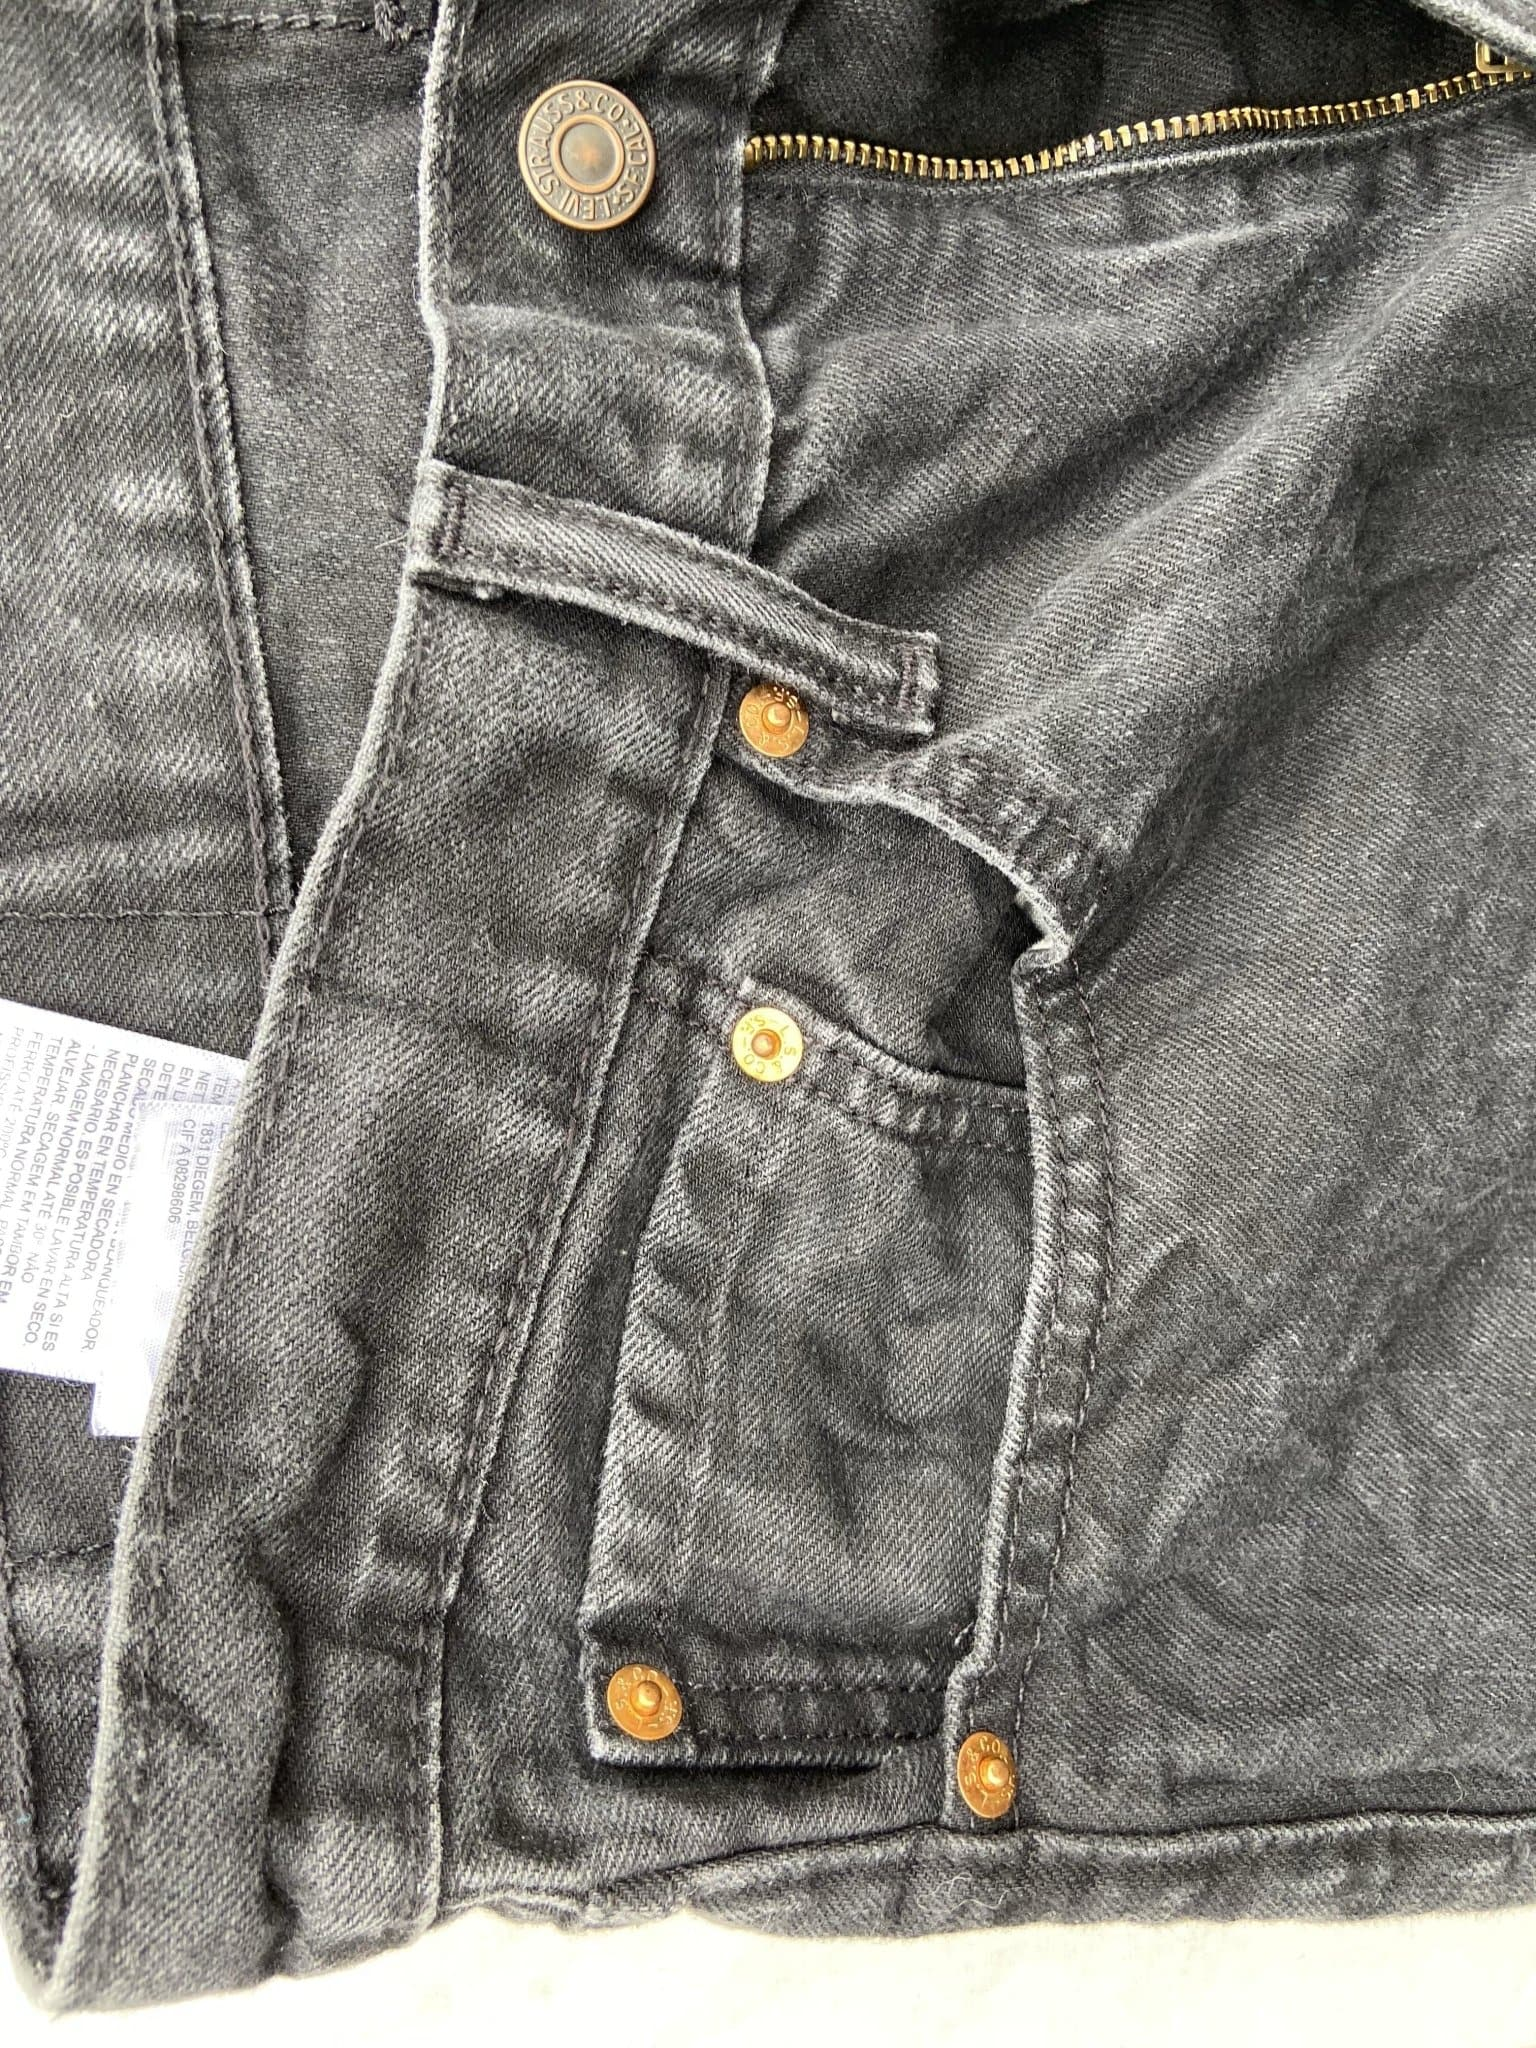 Vintage Levi's 514 Jeans W34 L30 - Discounted Deals UK